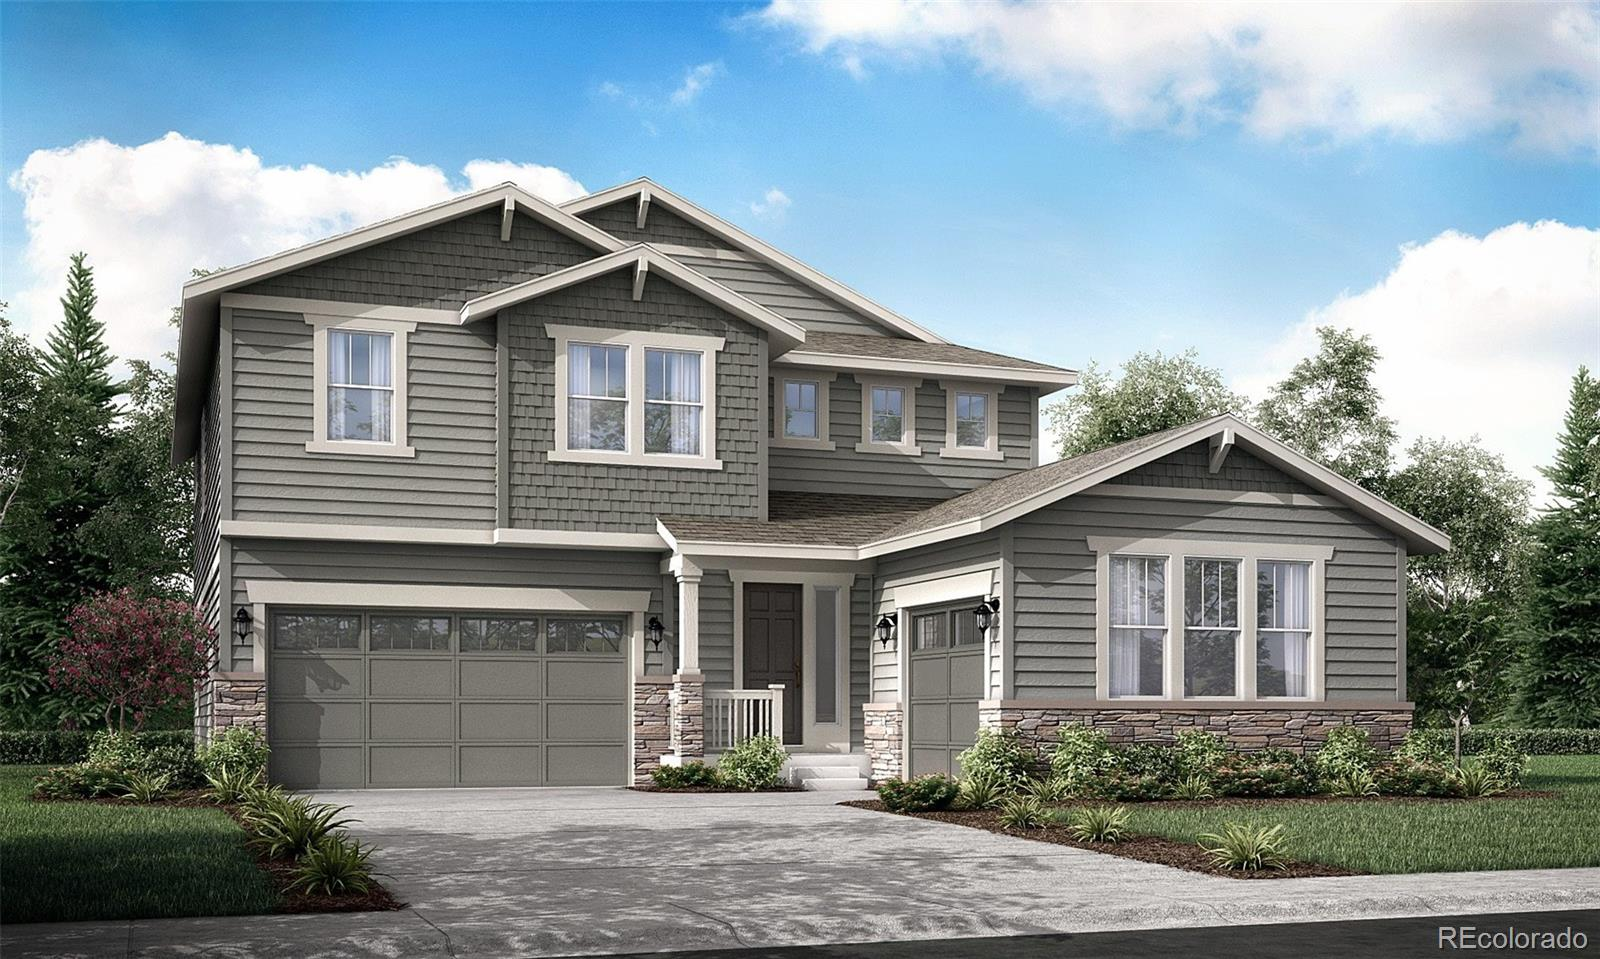 Available February 2022! Located in Barefoot Lakes, this stunning new Aspen 2-story features is located on a corner lot and backs to a green belt. Featuring 5 beds (4 upper and 1 main), 4 baths (3 upper & 1 main),  laundry, great room, kitchen, unfinished basement for your future expansion, 2 + 1 car garages and more. Beautiful finishes and upgrades throughout  including stainless steel appliances, large kitchen island and more. Lennar provides the latest in energy efficiency and state of the art technology with several fabulous floorplans to choose from. Energy efficiency, and technology seamlessly blended with luxury to make your new house a home. Barefoot Lakes offers single family homes for every lifestyle. Close to dining, shopping, entertainment and other amenities.  This community features extensive trails, wide open spaces, and twin sapphire lakes all set against backgrounds of deep blue skies and Colorado's breathtaking sunsets! Welcome Home! There are differences in included features in the virtual tours vs our homes at Barefoot. Please speak to the New Home Consultant on site for more details. Color selections are final.